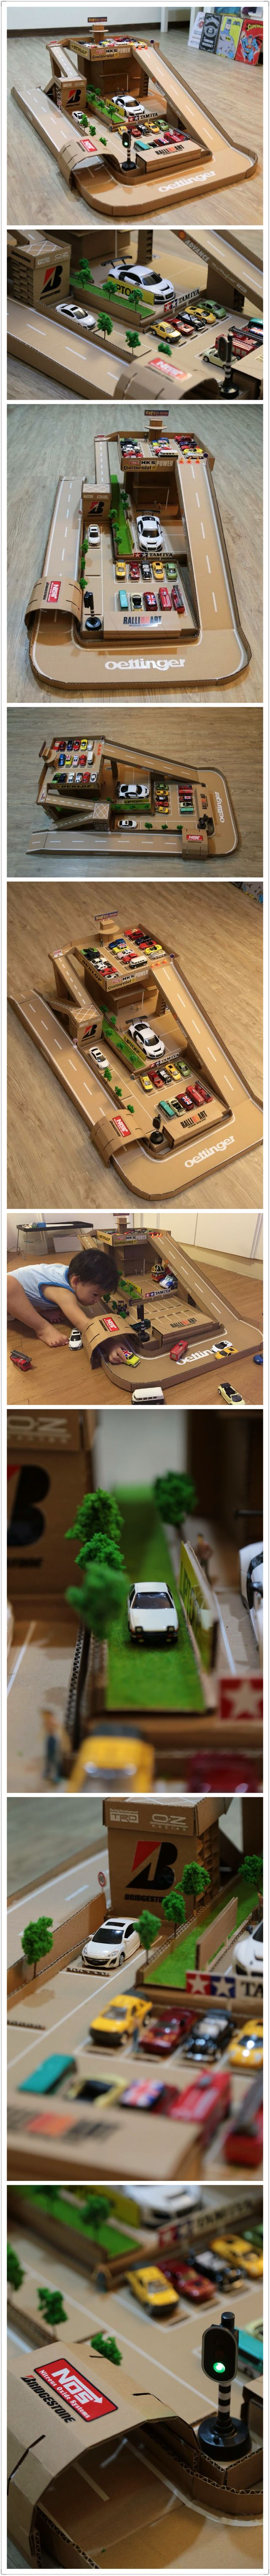 DIY toy car garage/car station/parking lots for my 2yrs son.Hope he won't destroy it too soon...